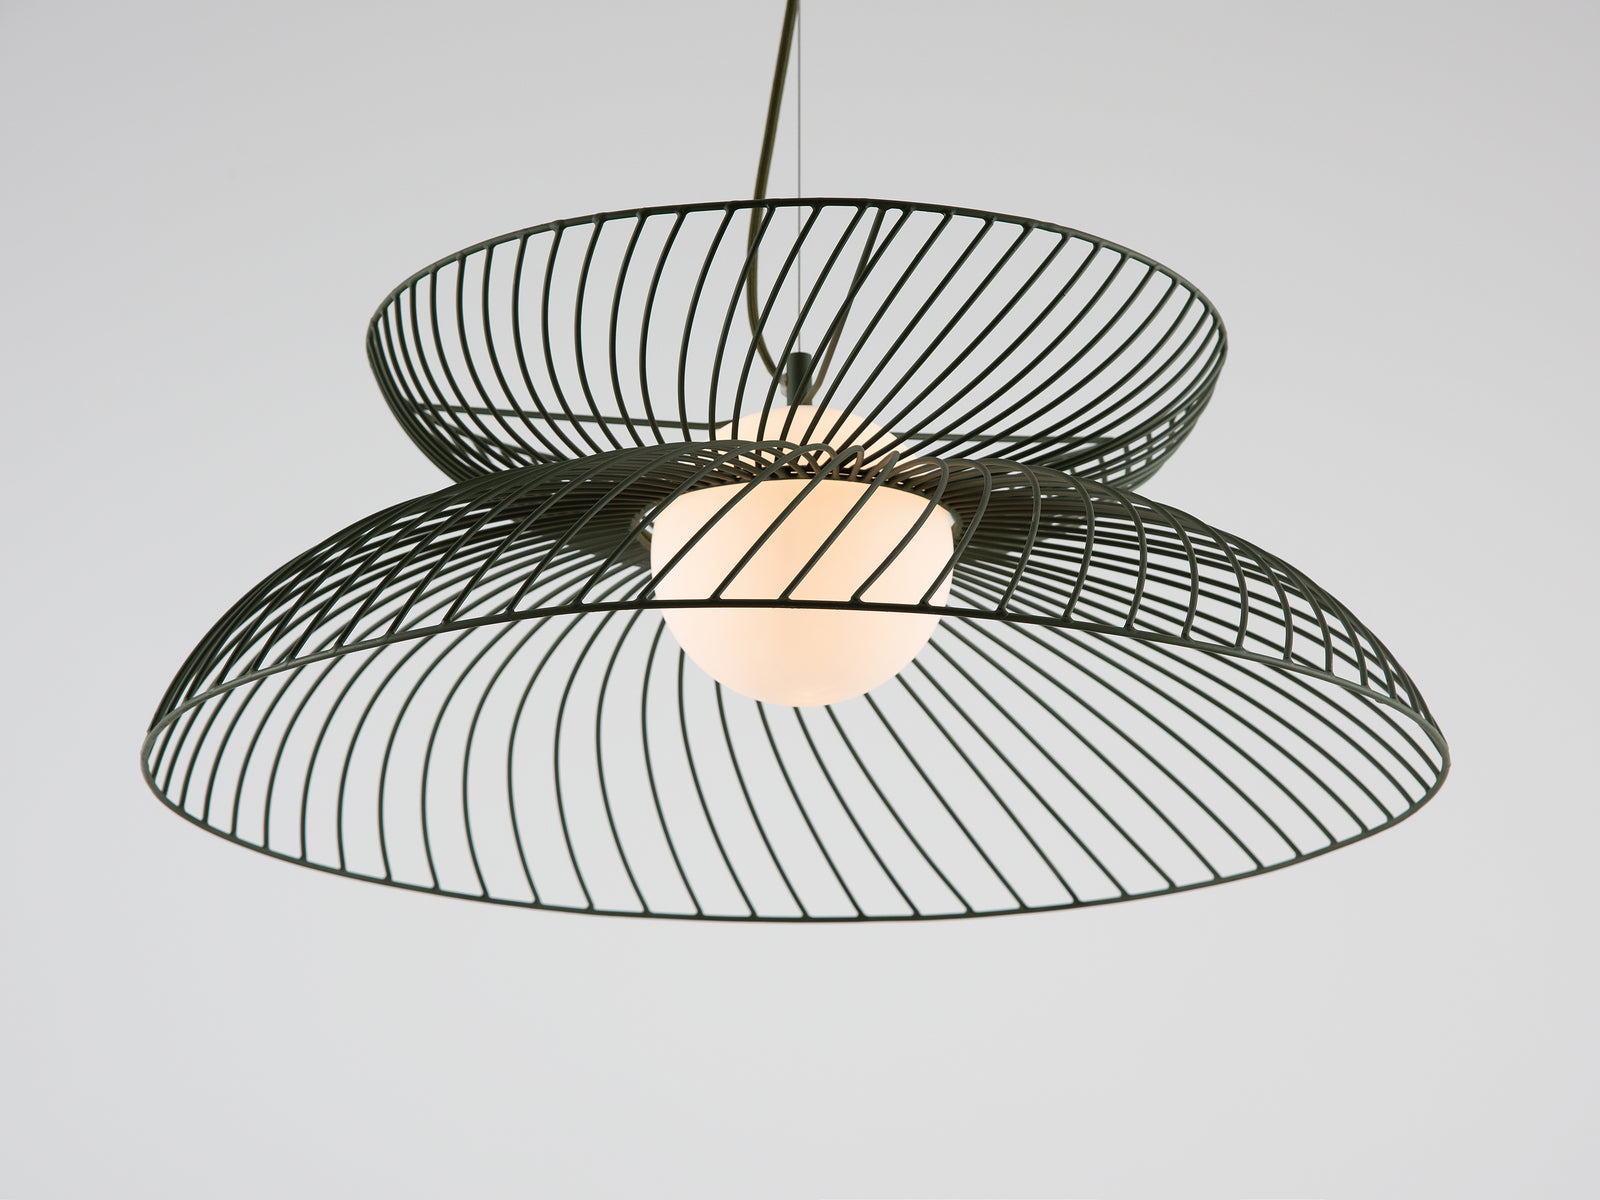 Cage pendant ceiling light olive | zoom | houseof.com